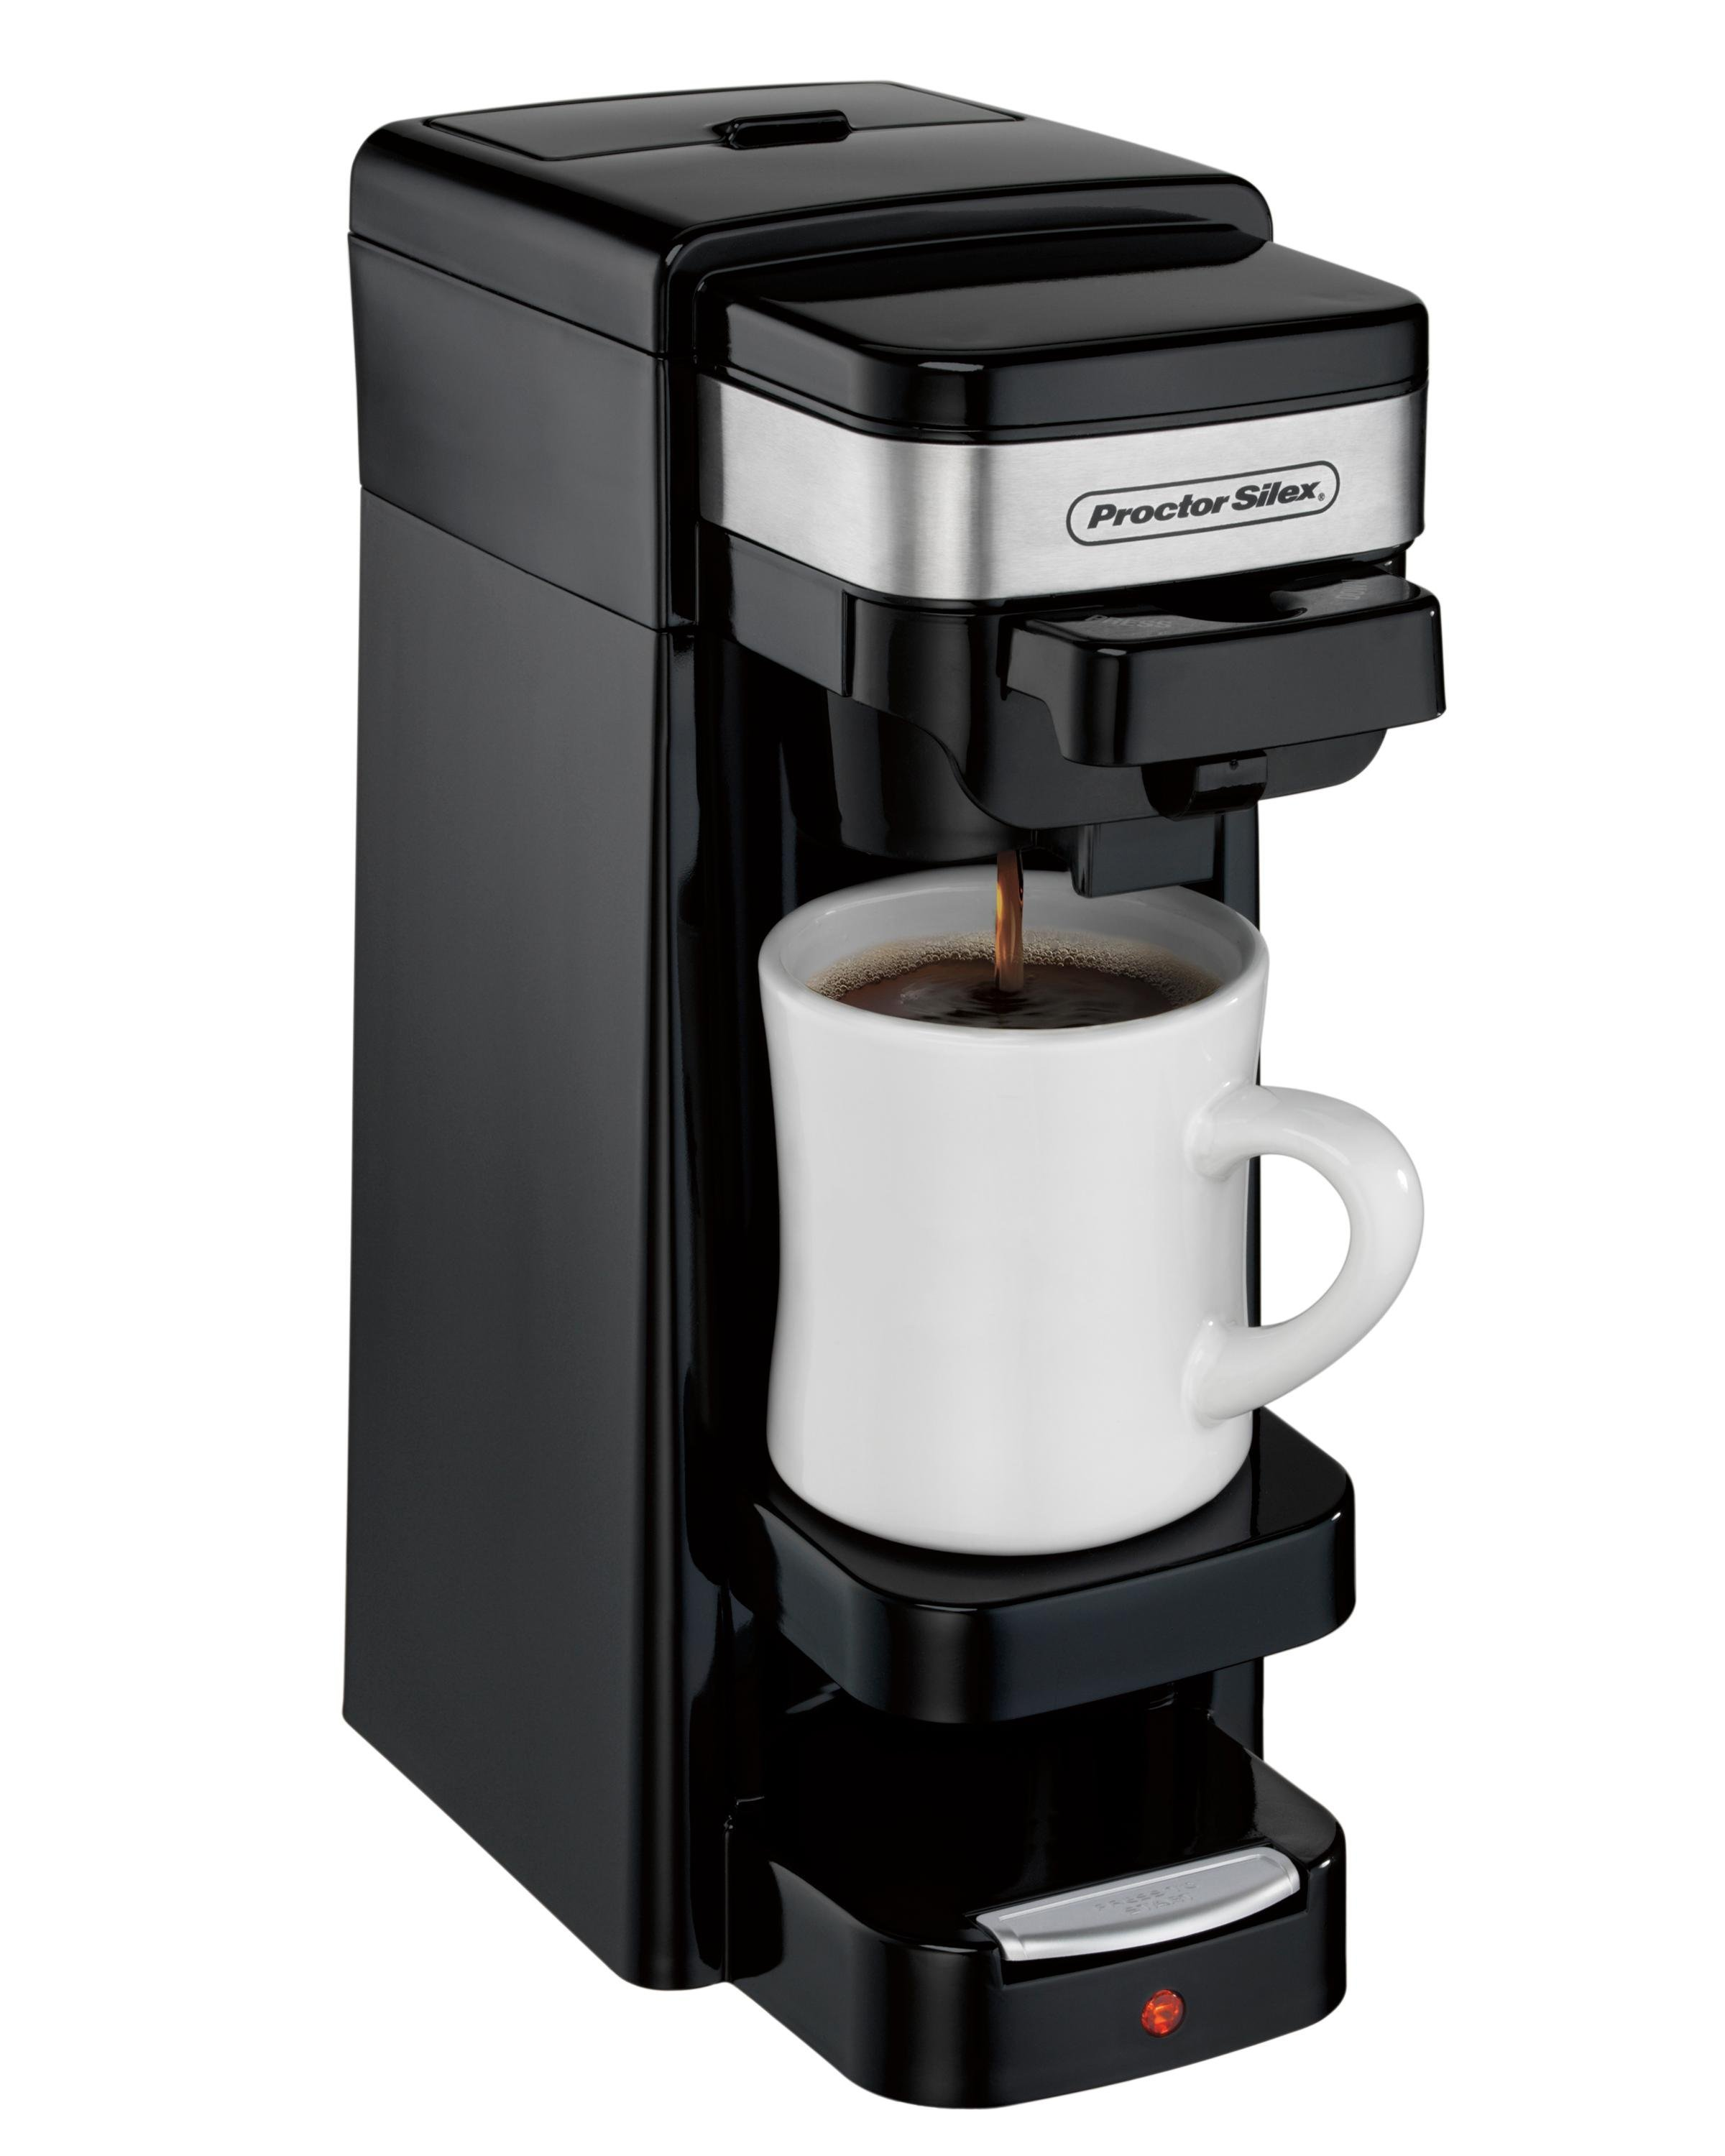 c8f356ff 03a7 42fd a990 7e11d6499bee.jpg. CB271414519  Where Are Keurig Coffee Makers Made